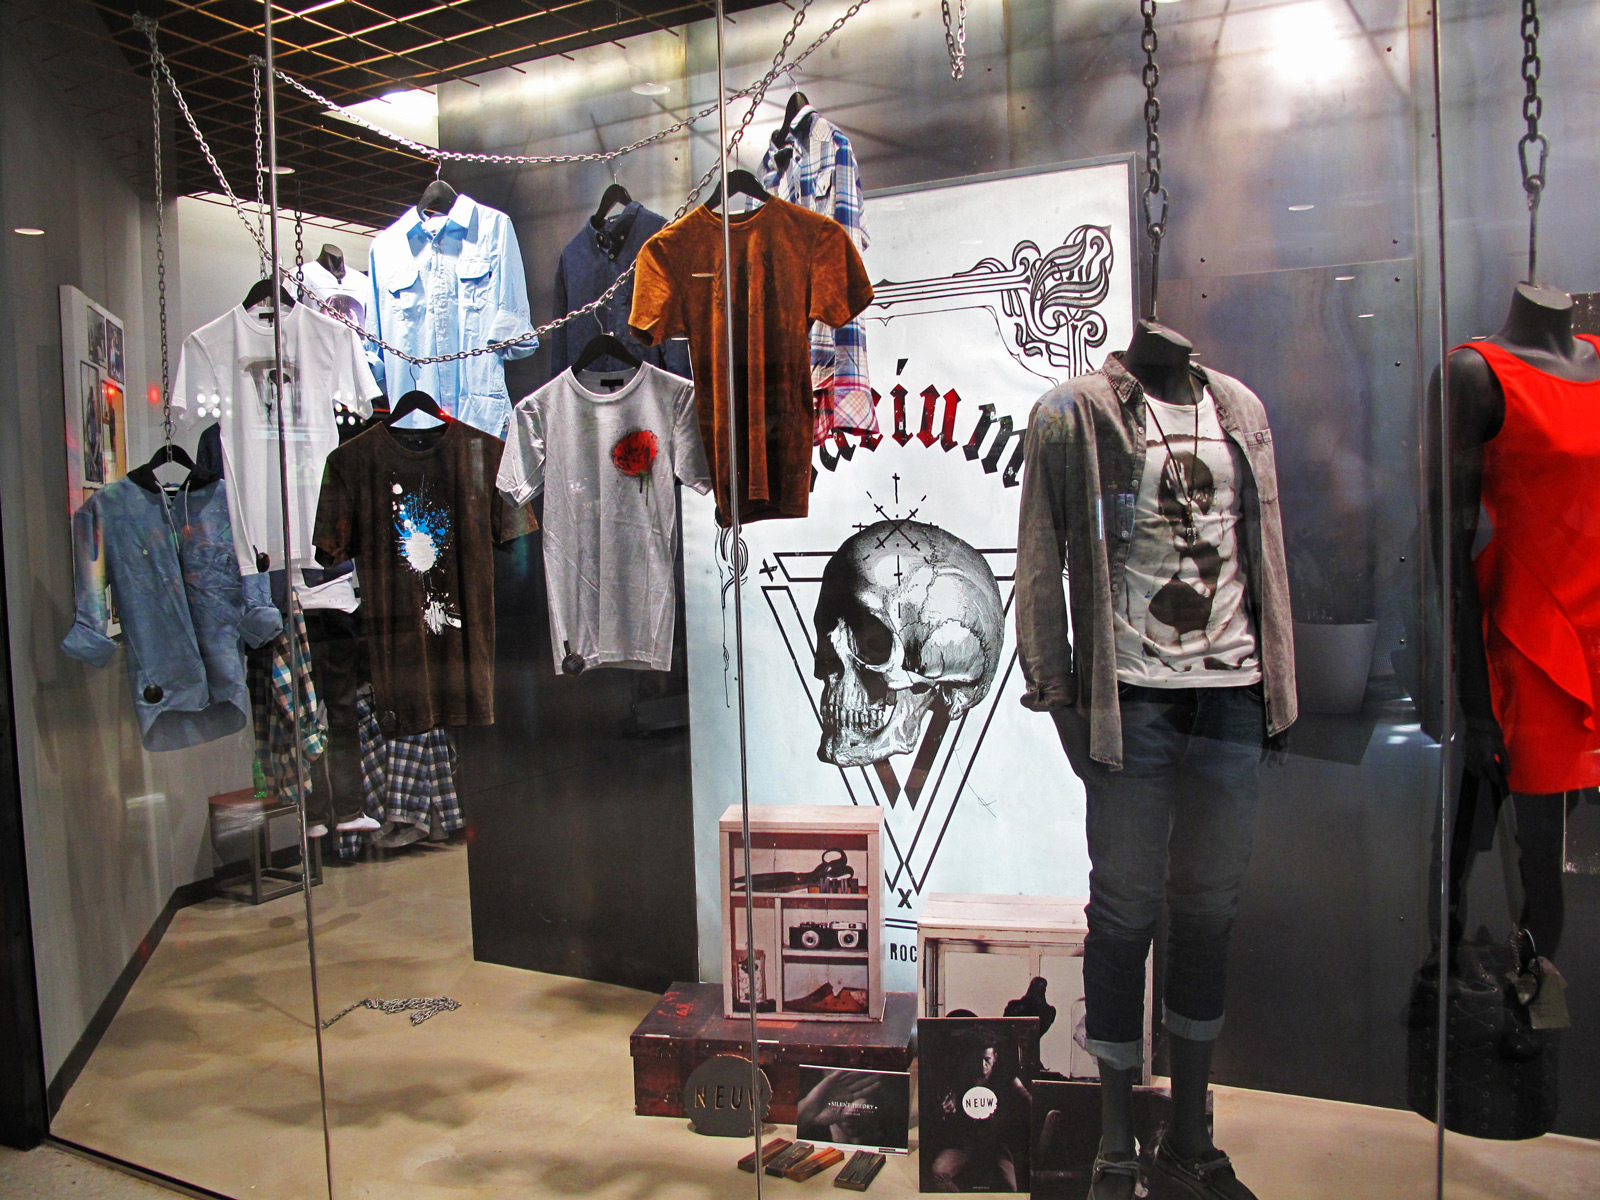 An autumn window display decorated with hanging t-shirts in chains and a skull drawn on the background.